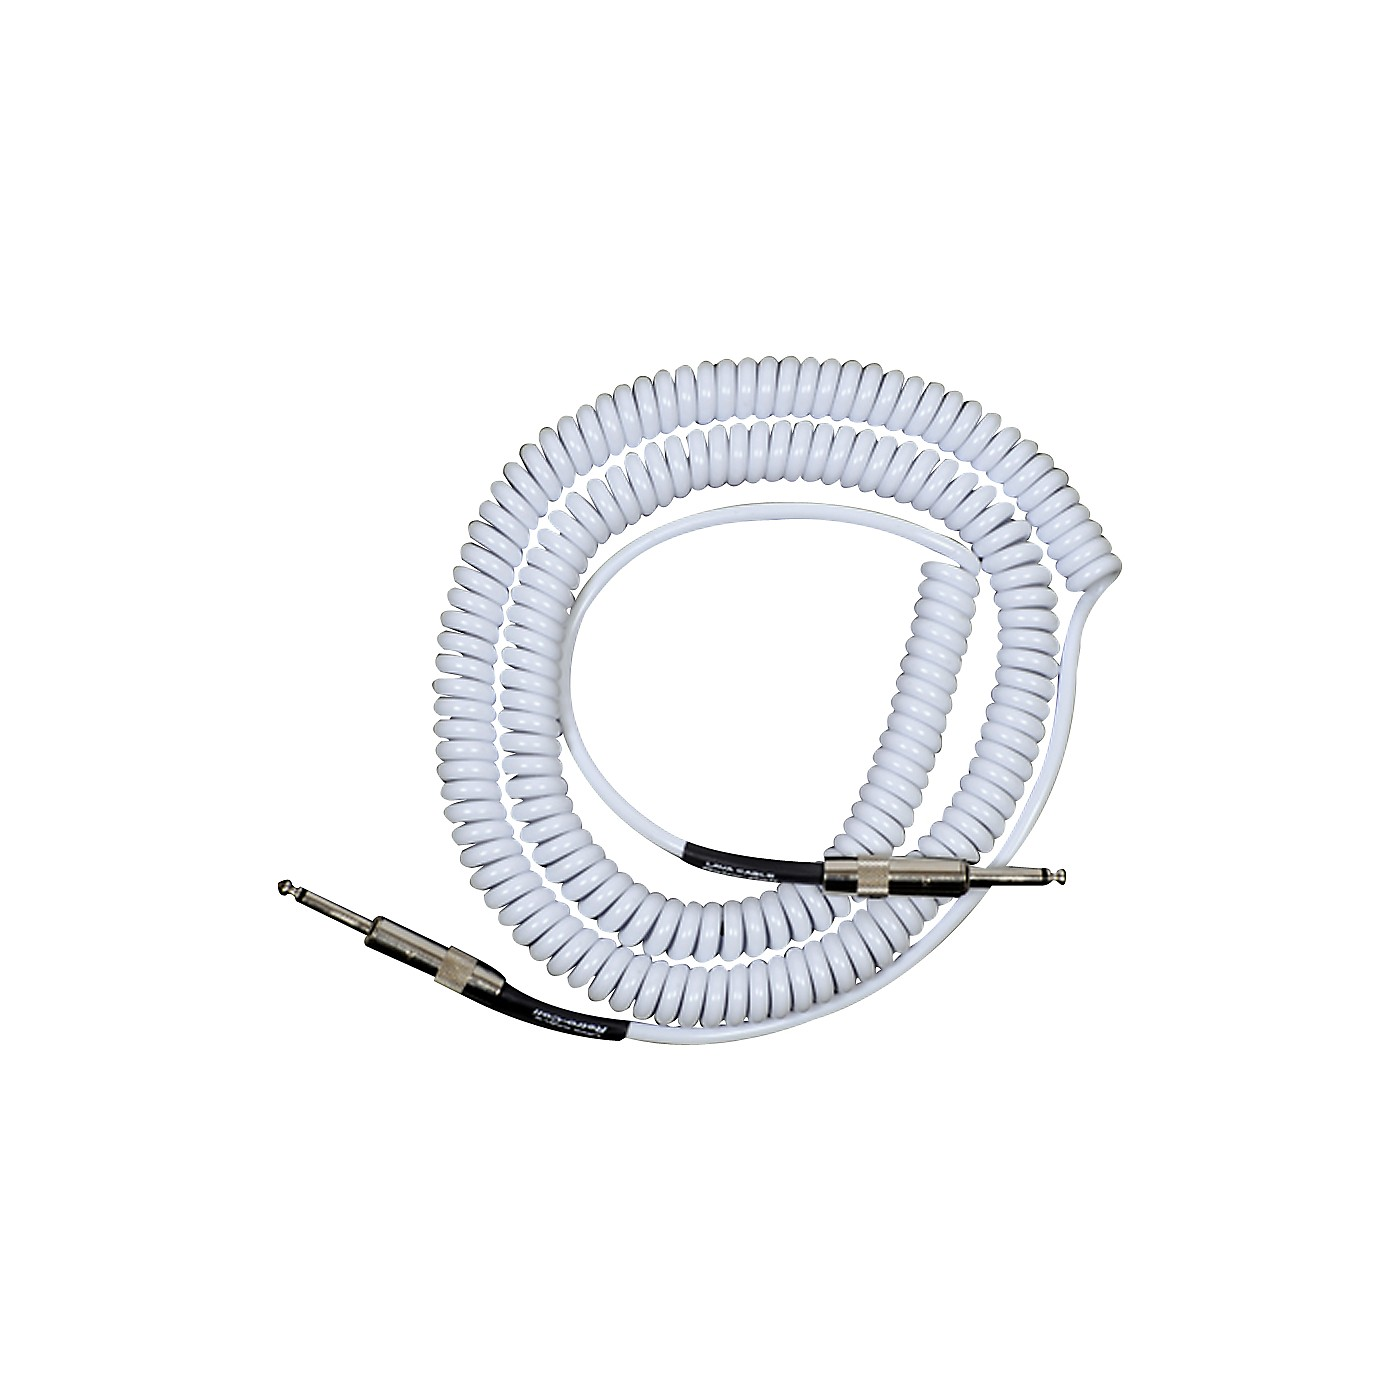 Lava Retro Coil 20 Foot Instrument Cable Straight to Straight Assorted Colors thumbnail